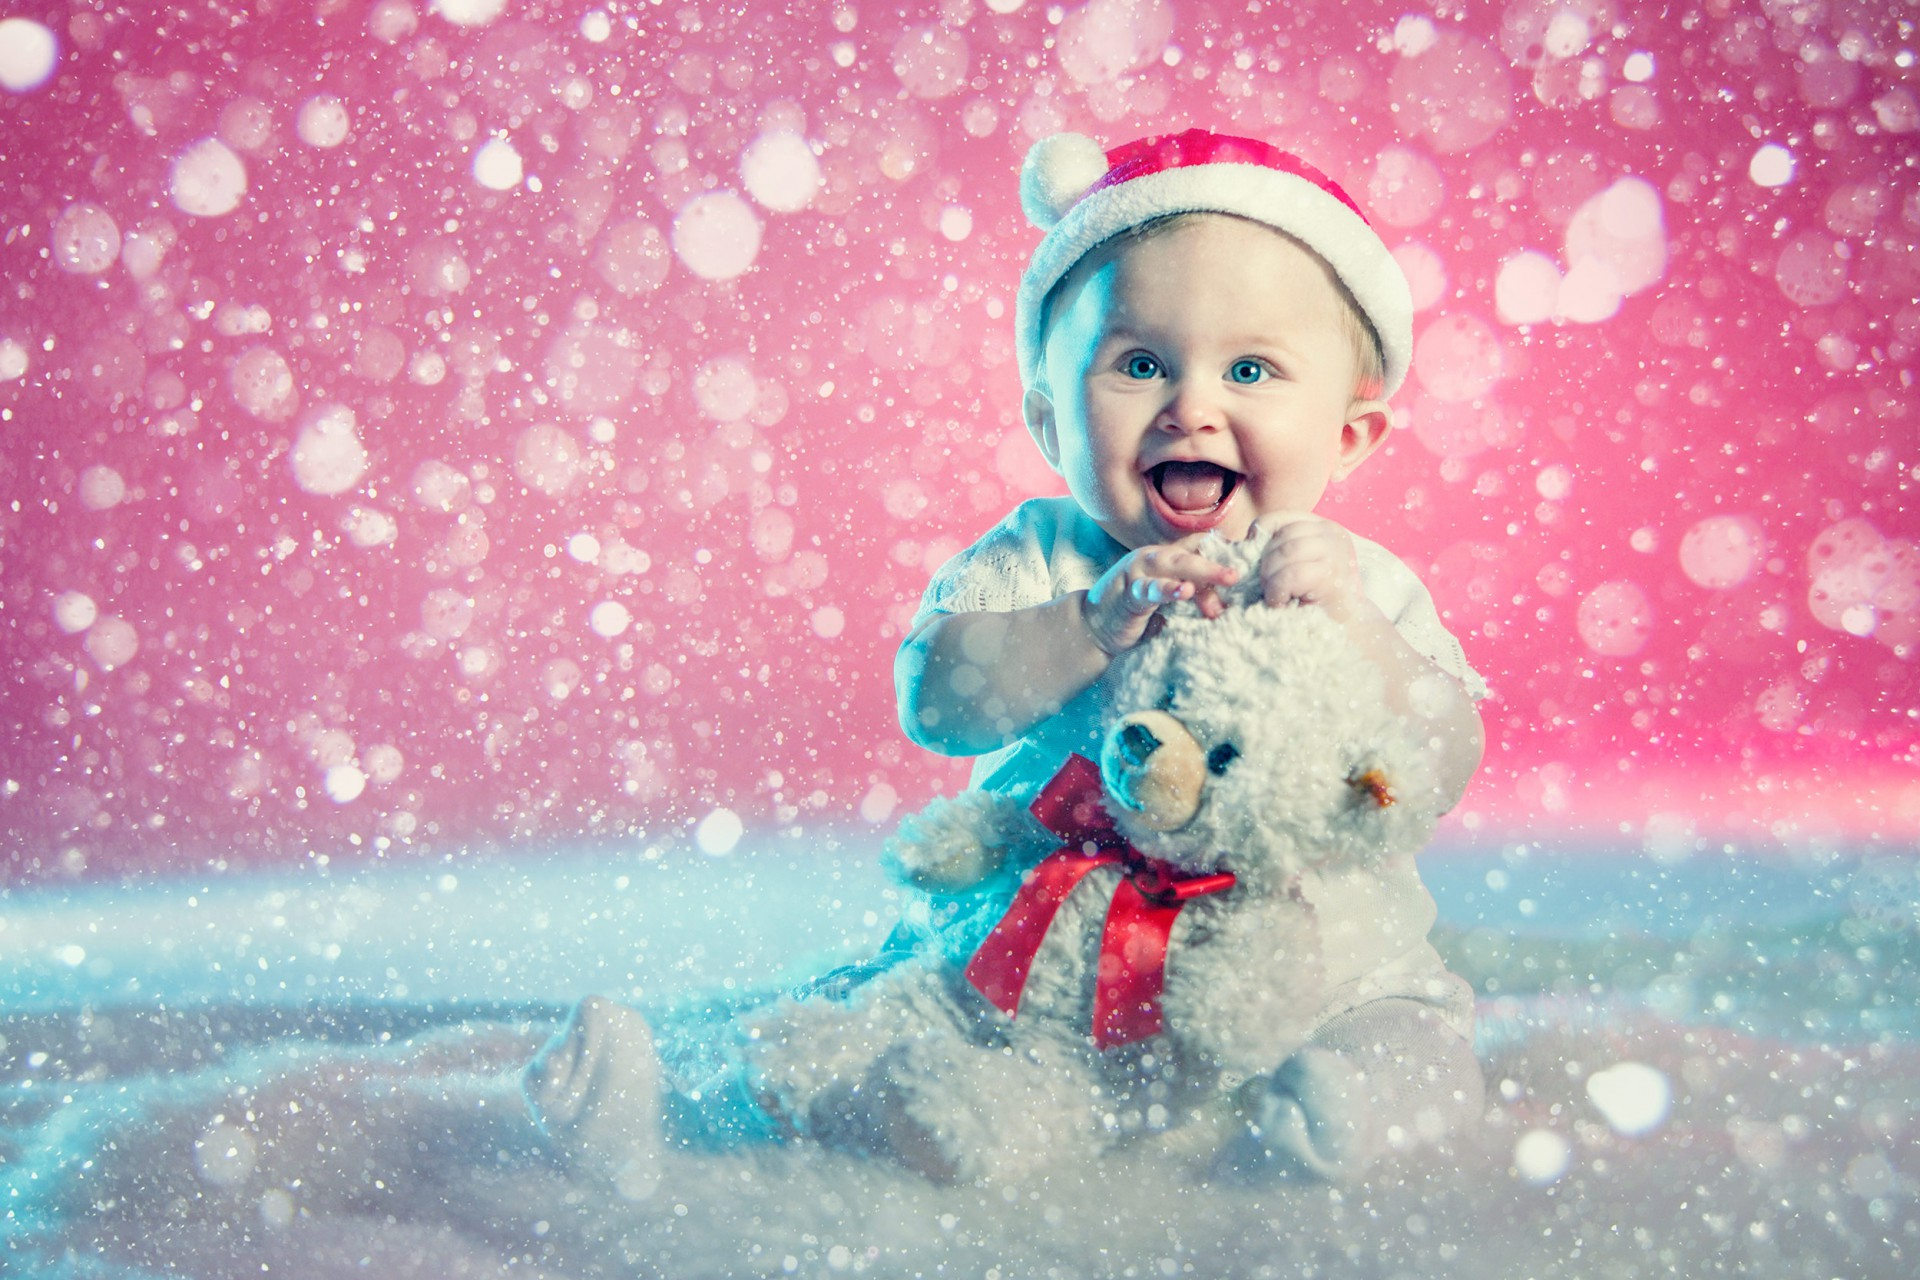 151220-Isabella-jul-01-snow